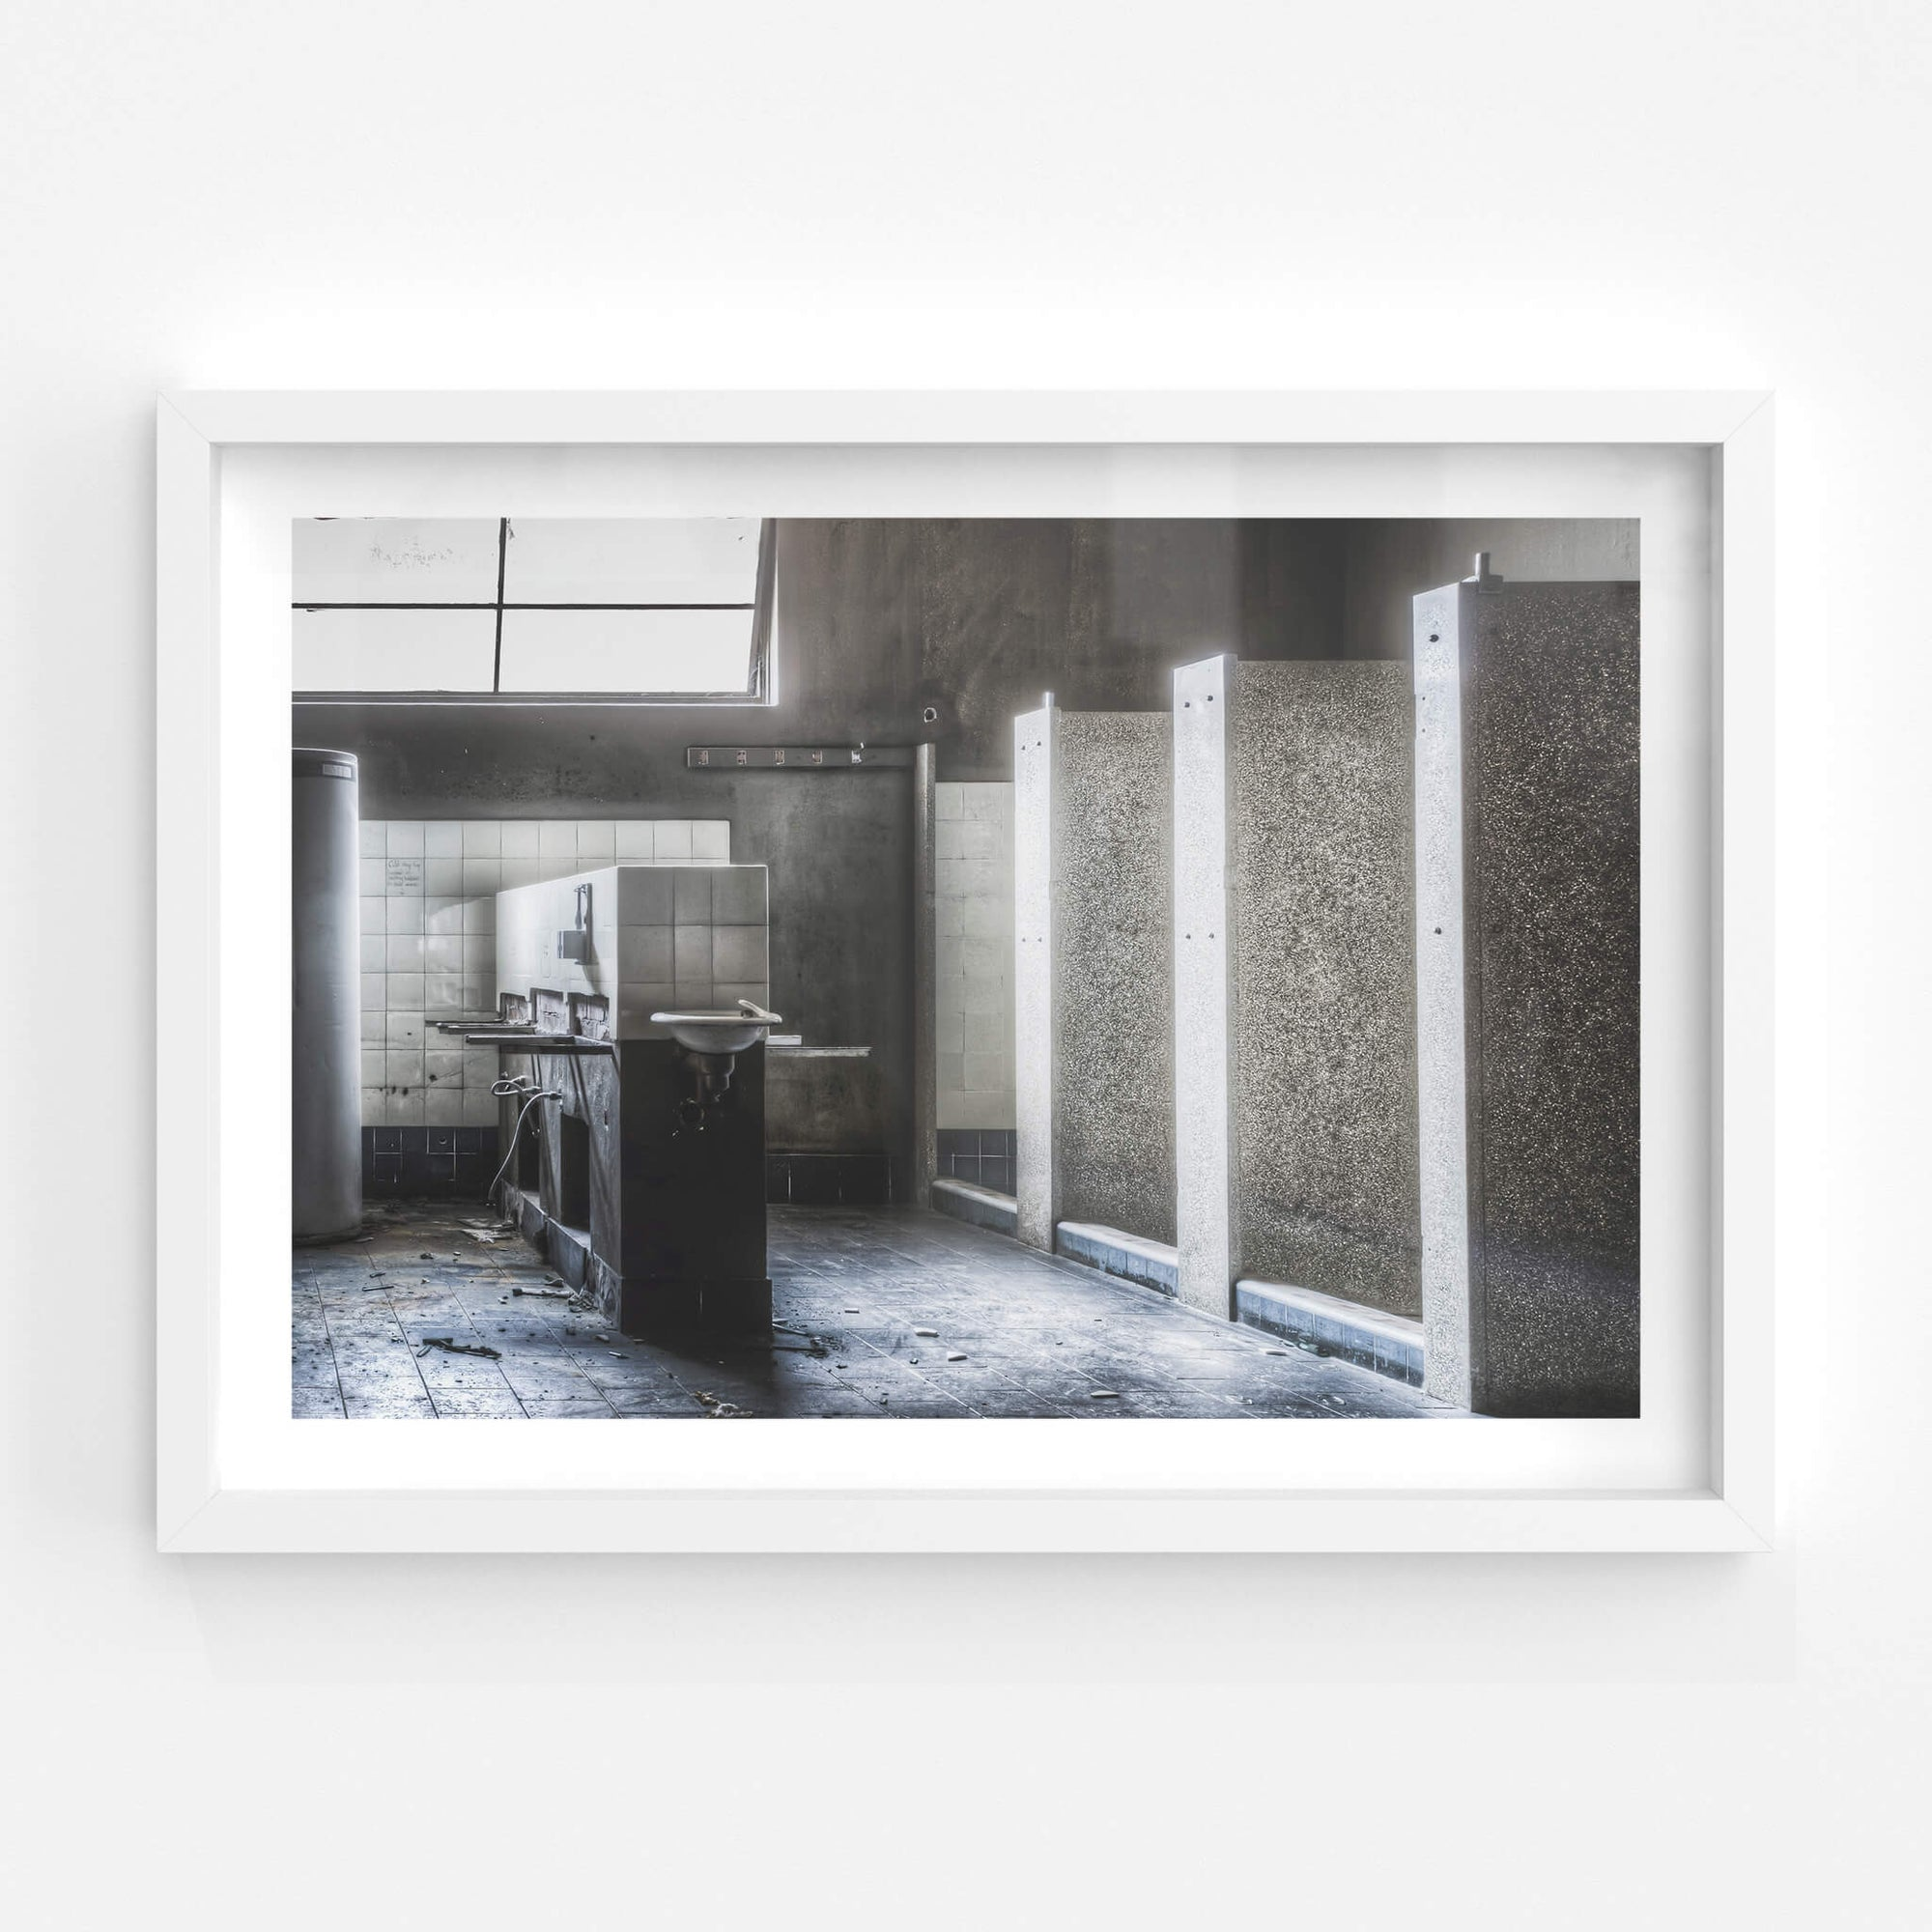 Showers | ATL Building Fine Art Print - Lost Collective Shop